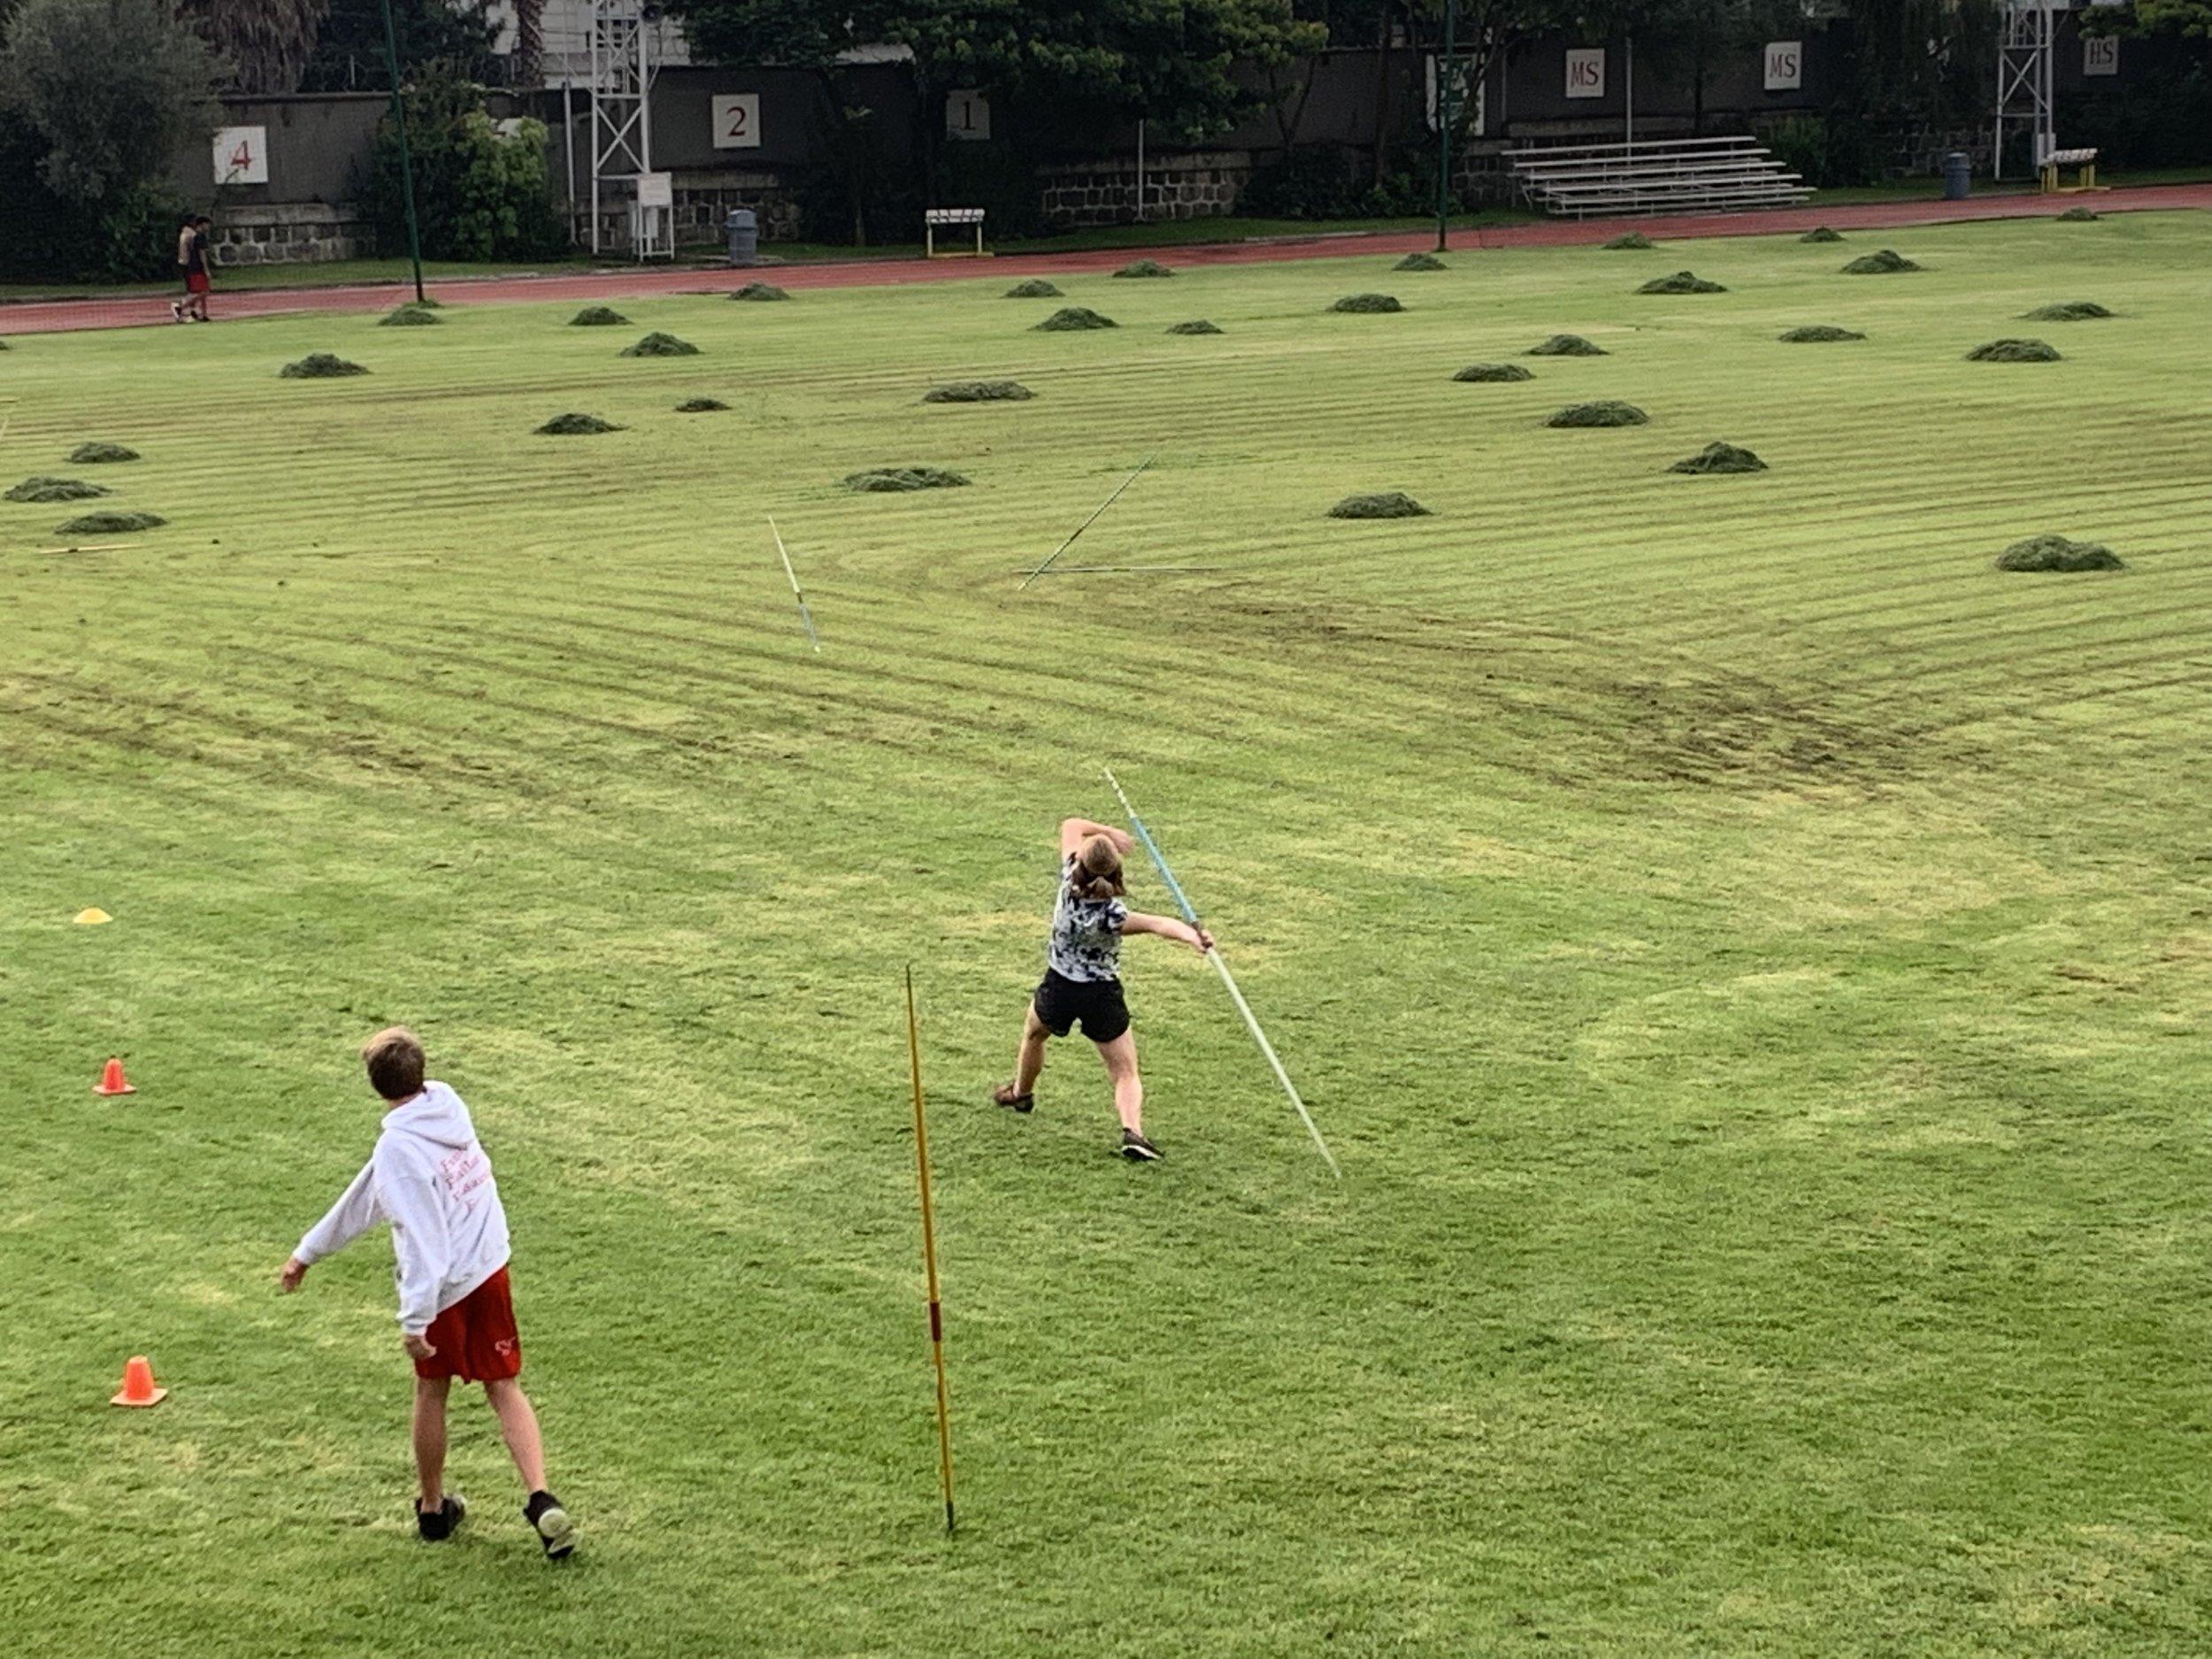 The view of practice from the parents viewing platform. The wind-up shown above. Followed by the throw below.